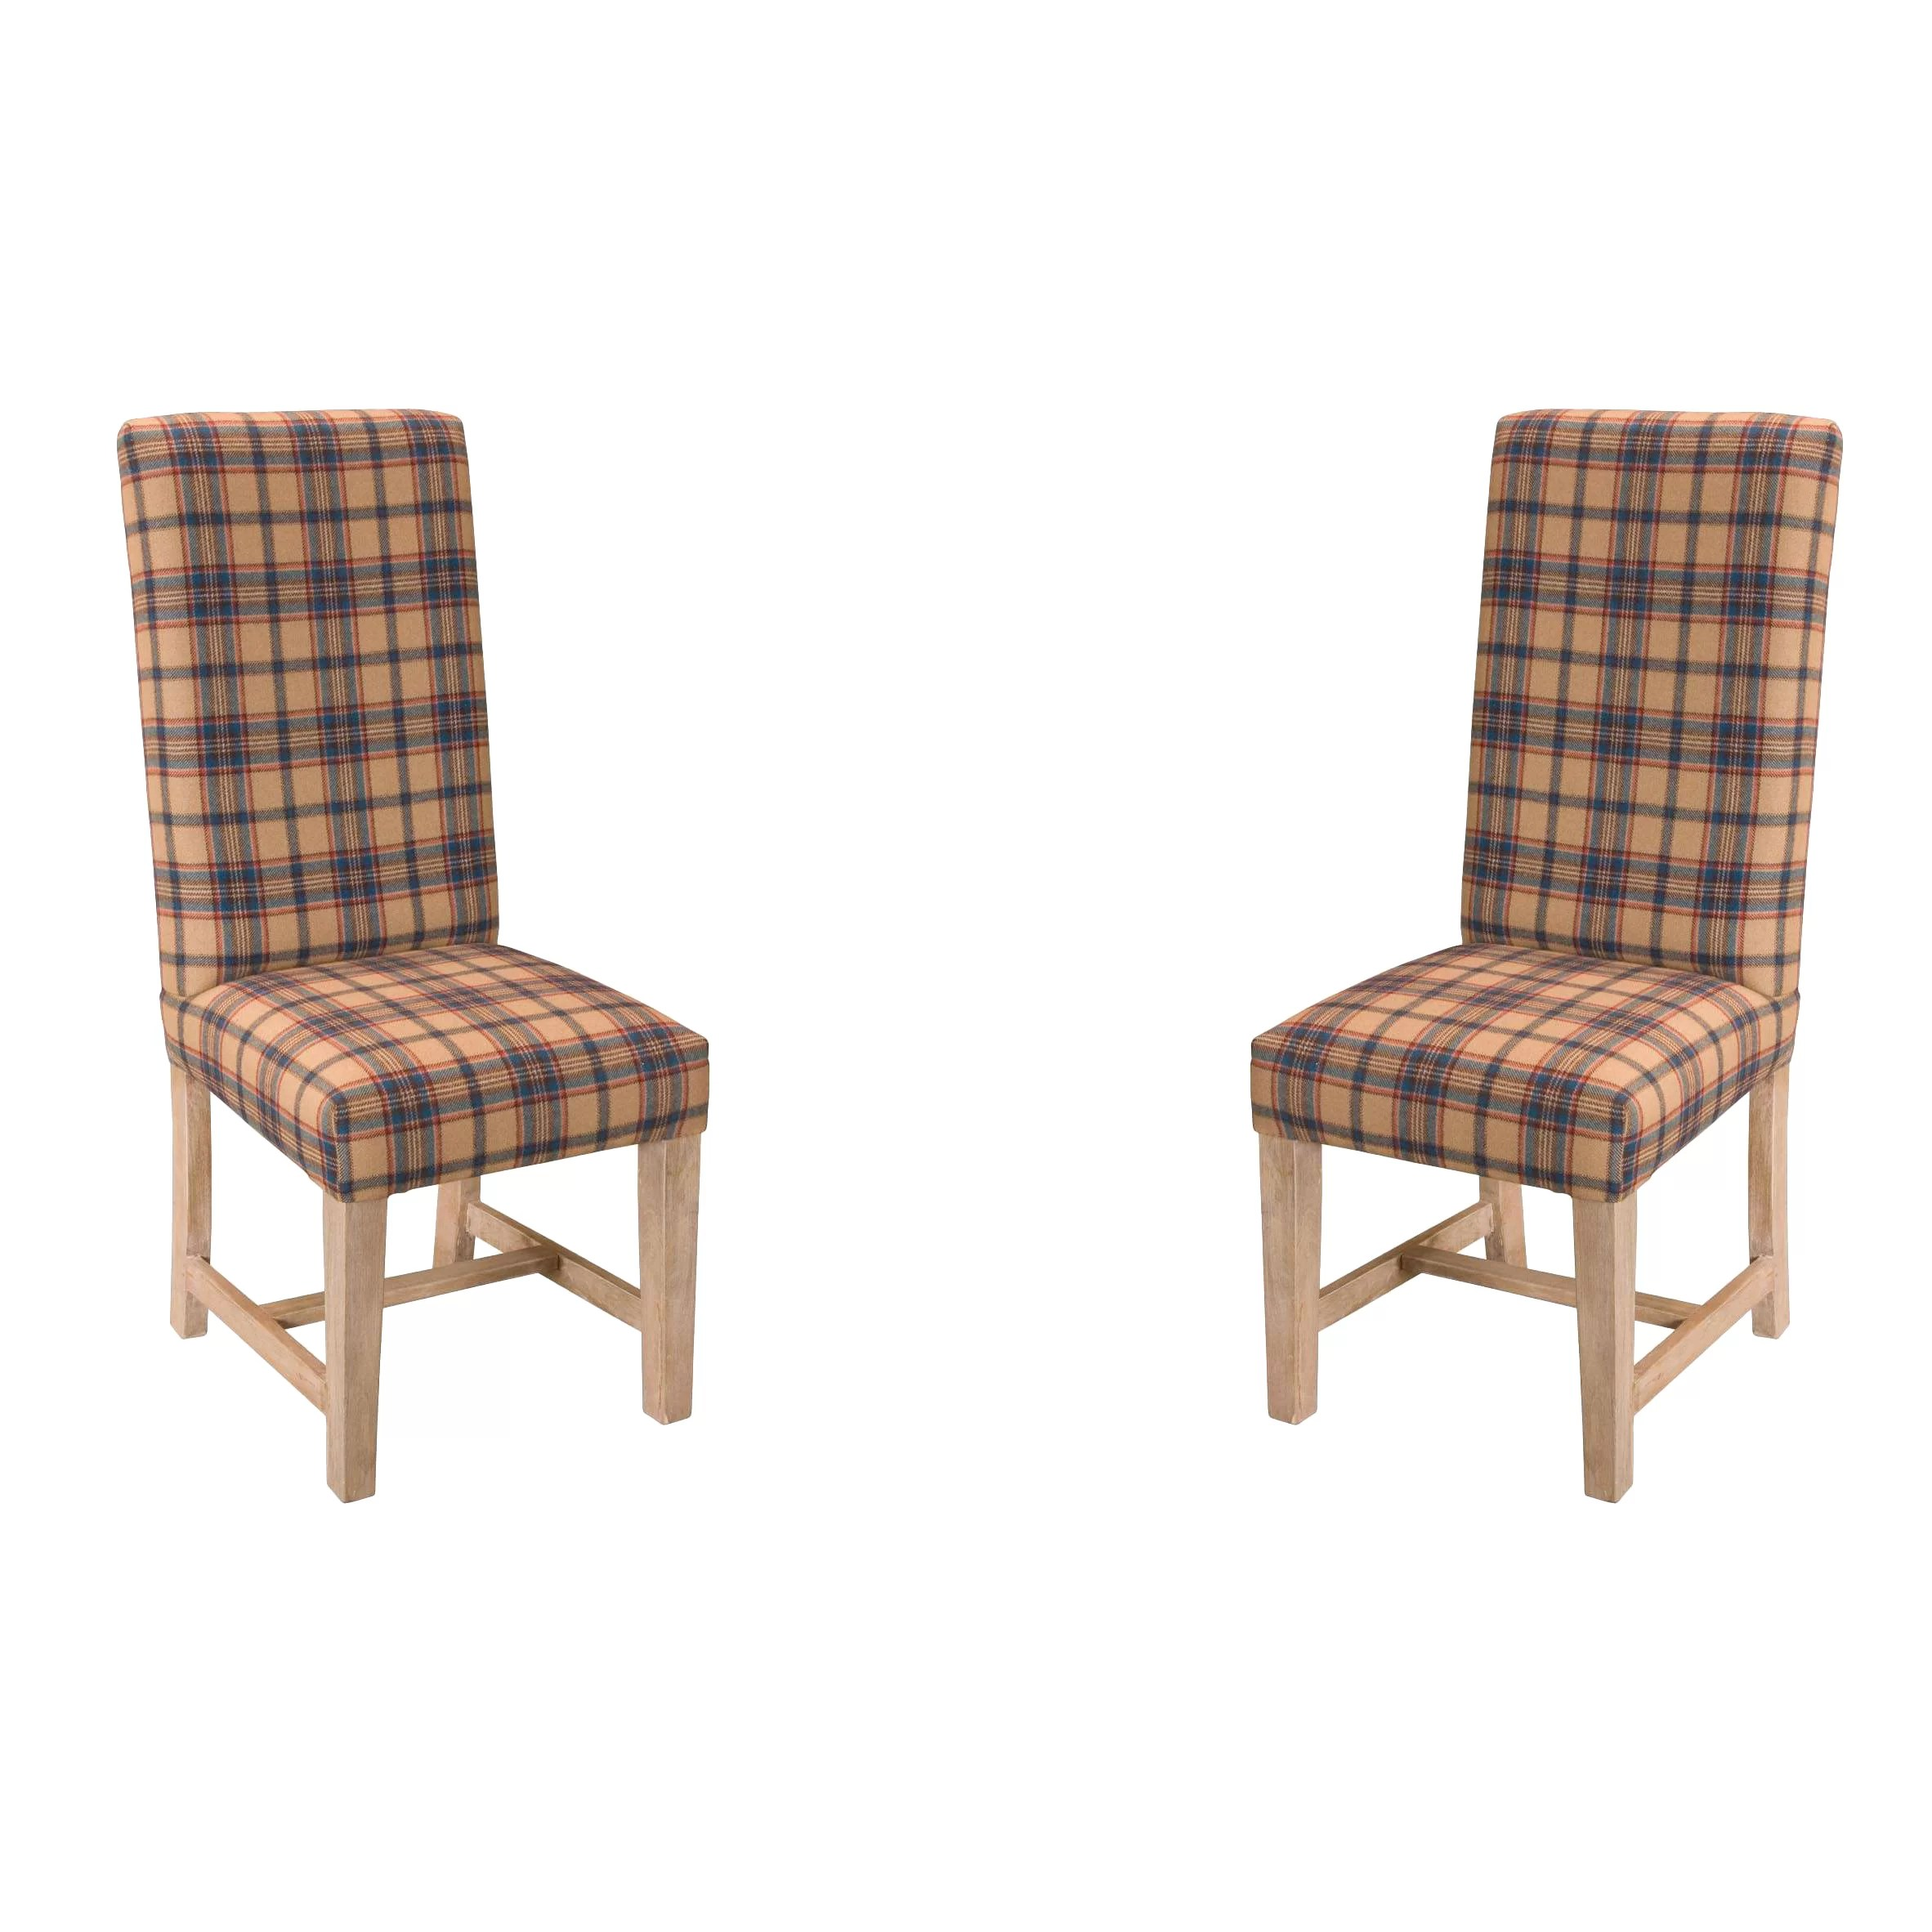 Wayfair Dining Chairs Château Chic Solid Wood Upholstered Dining Chair Wayfair Uk